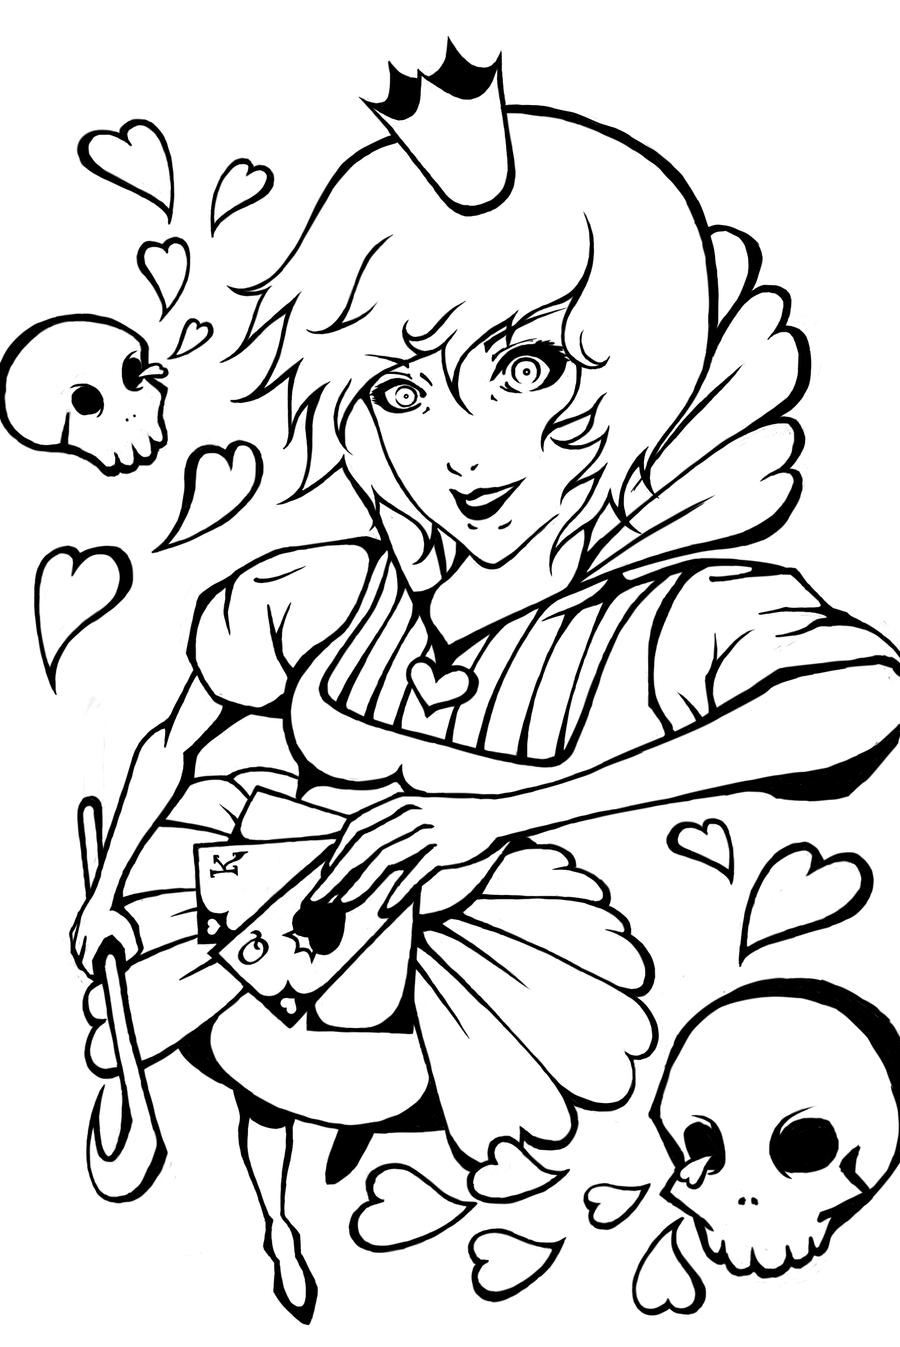 Coloring page queen of hearts - View Larger Image Image